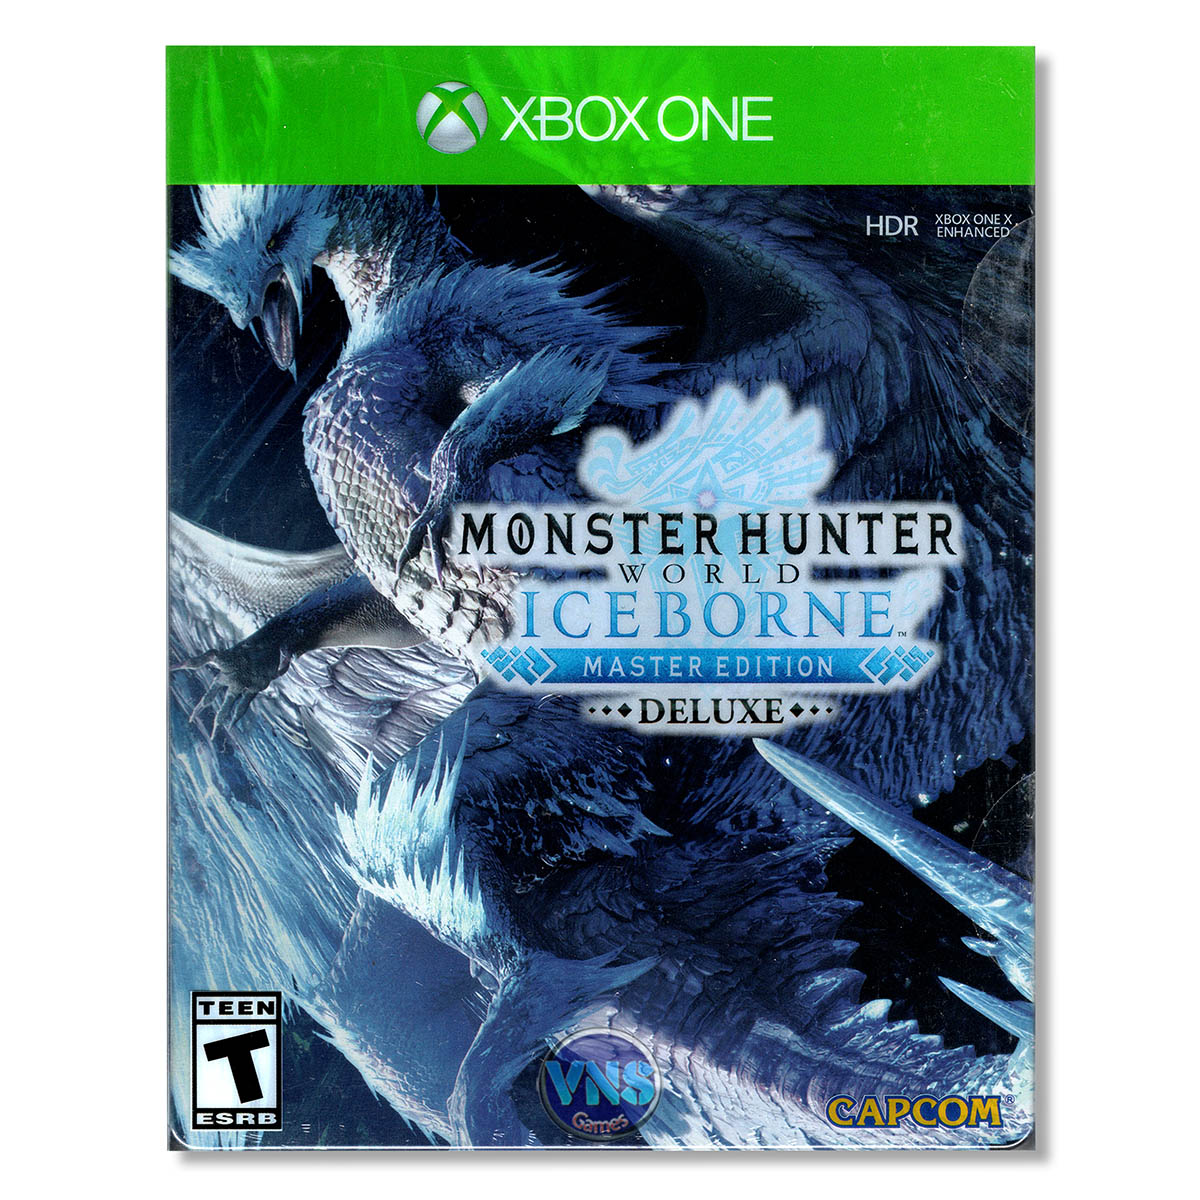 Monster Hunter World Iceborne - Master Edition Deluxe - Xbox One